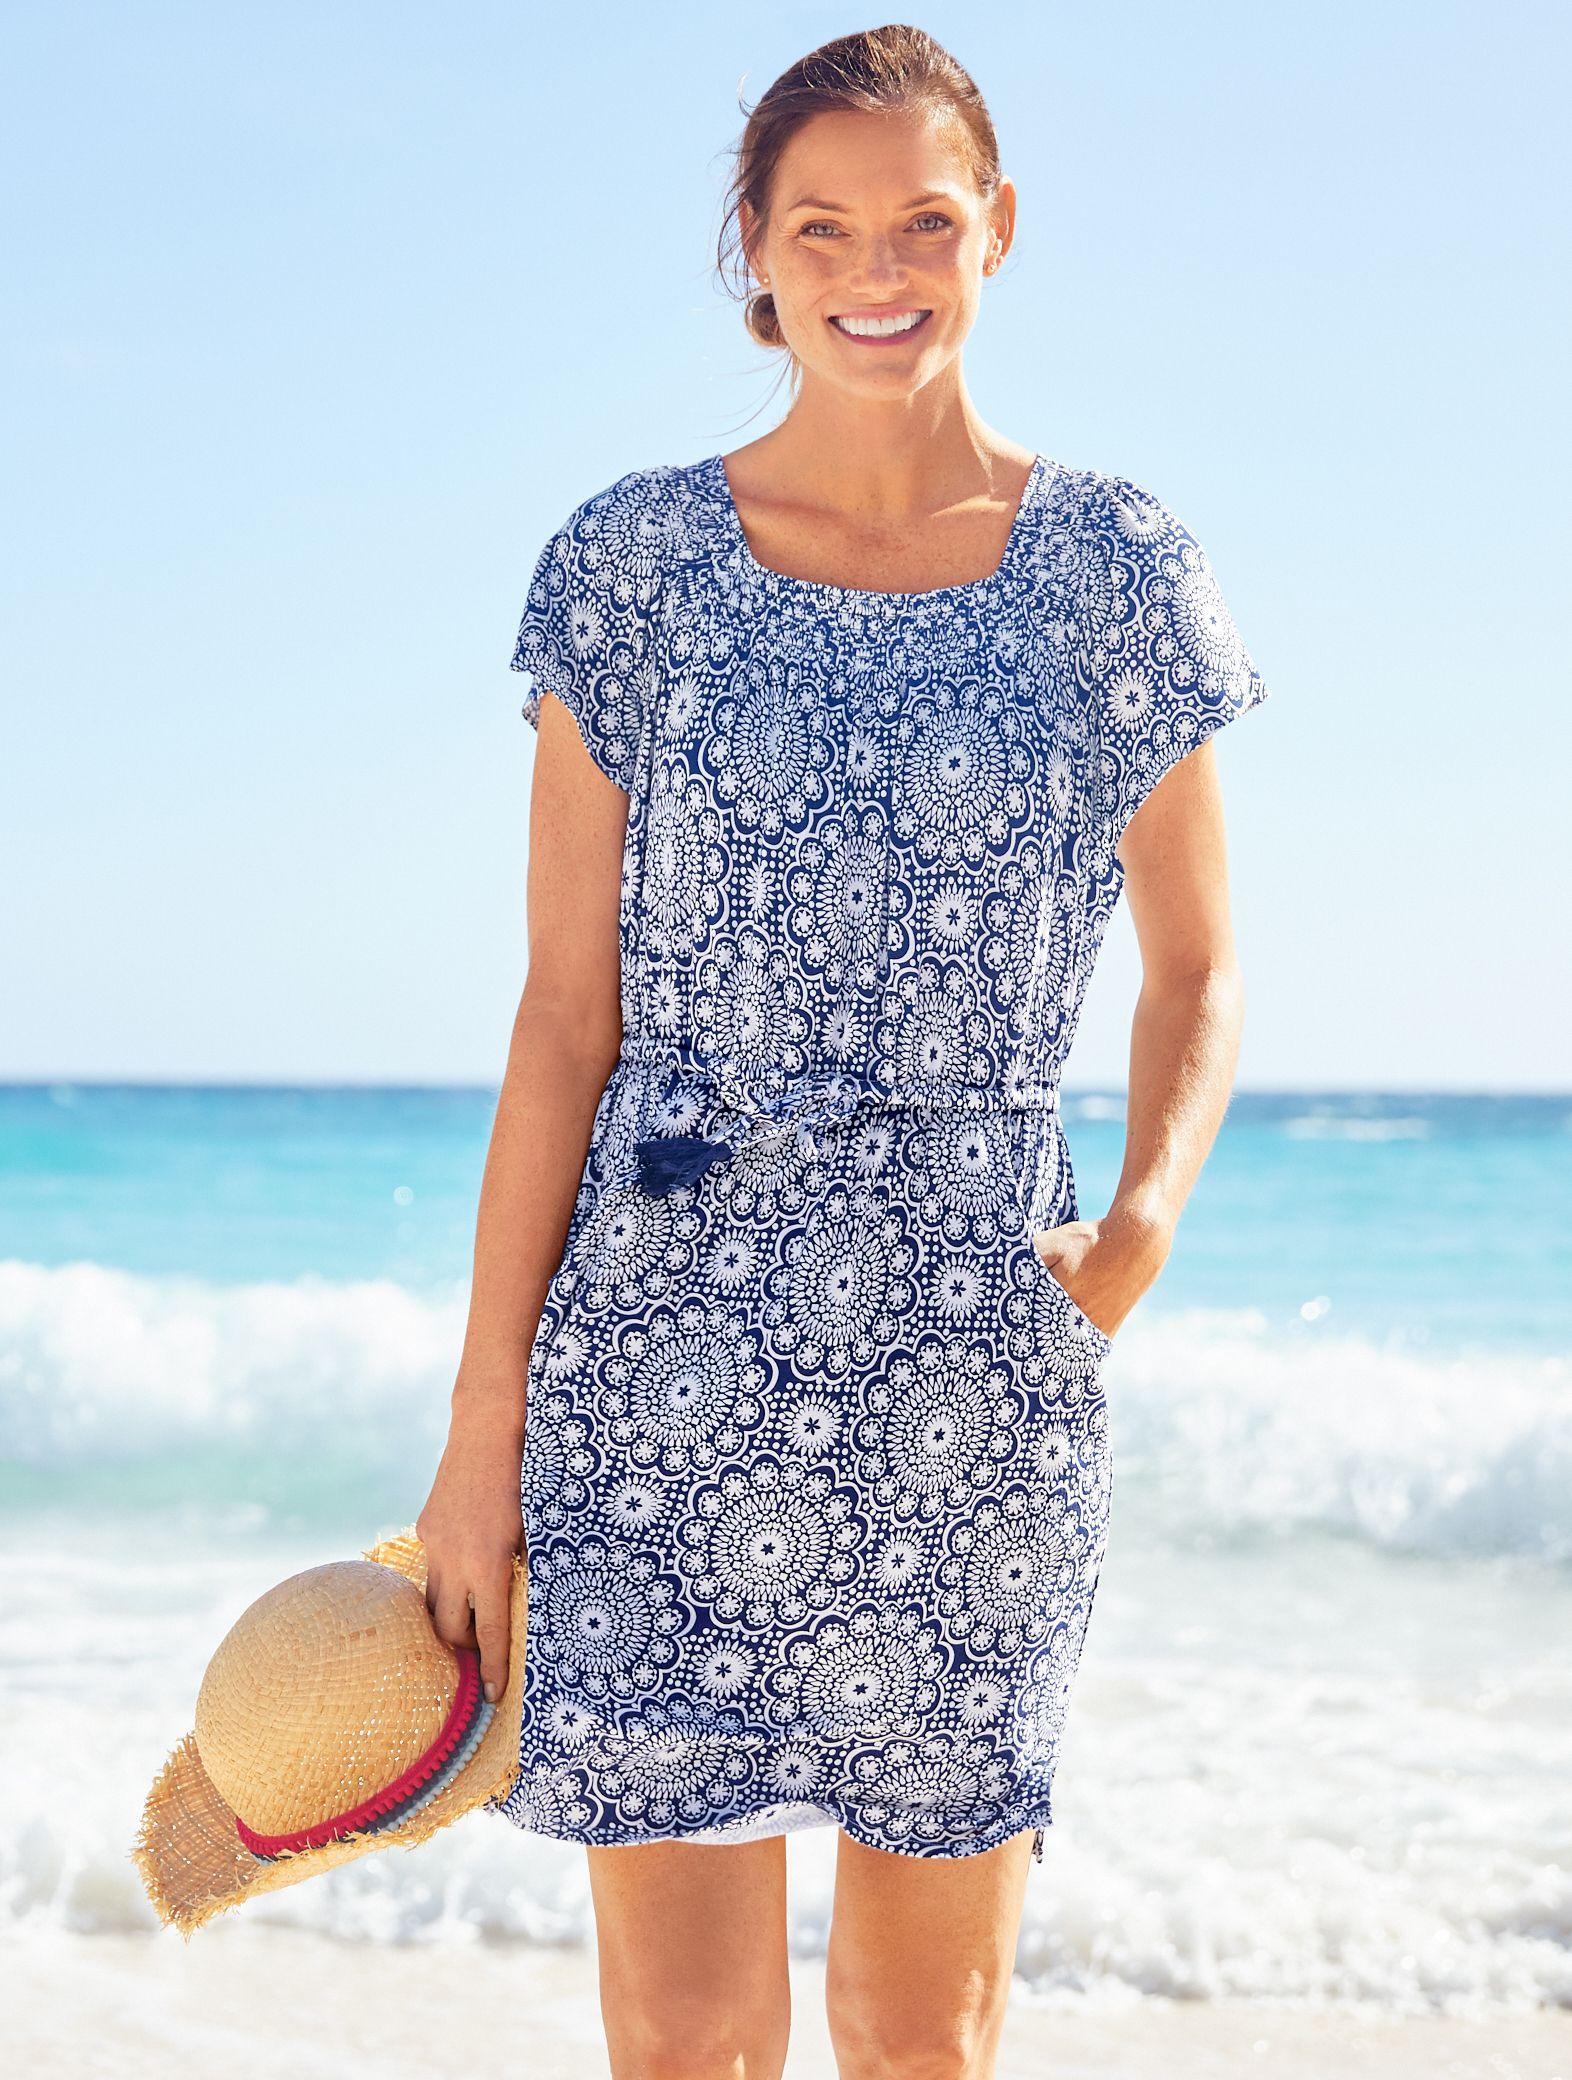 b830337a799f1 A beautifully patterned beach cover-up for every warm-weather season. Dive  into Talbots to see more styles & colors. | Talbots